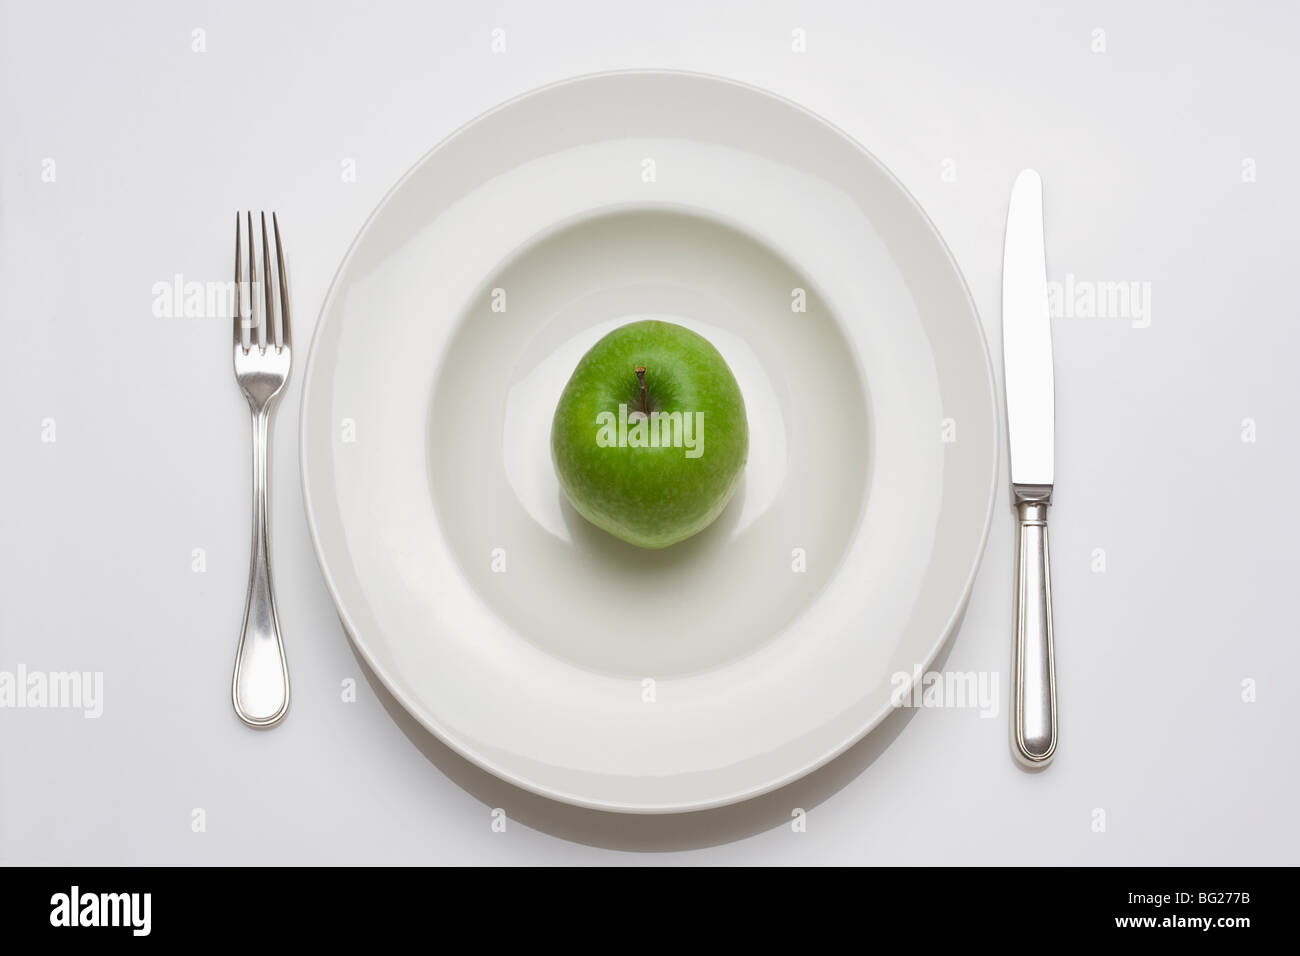 diet - green apple on a white plate with knife and fork - Stock Image